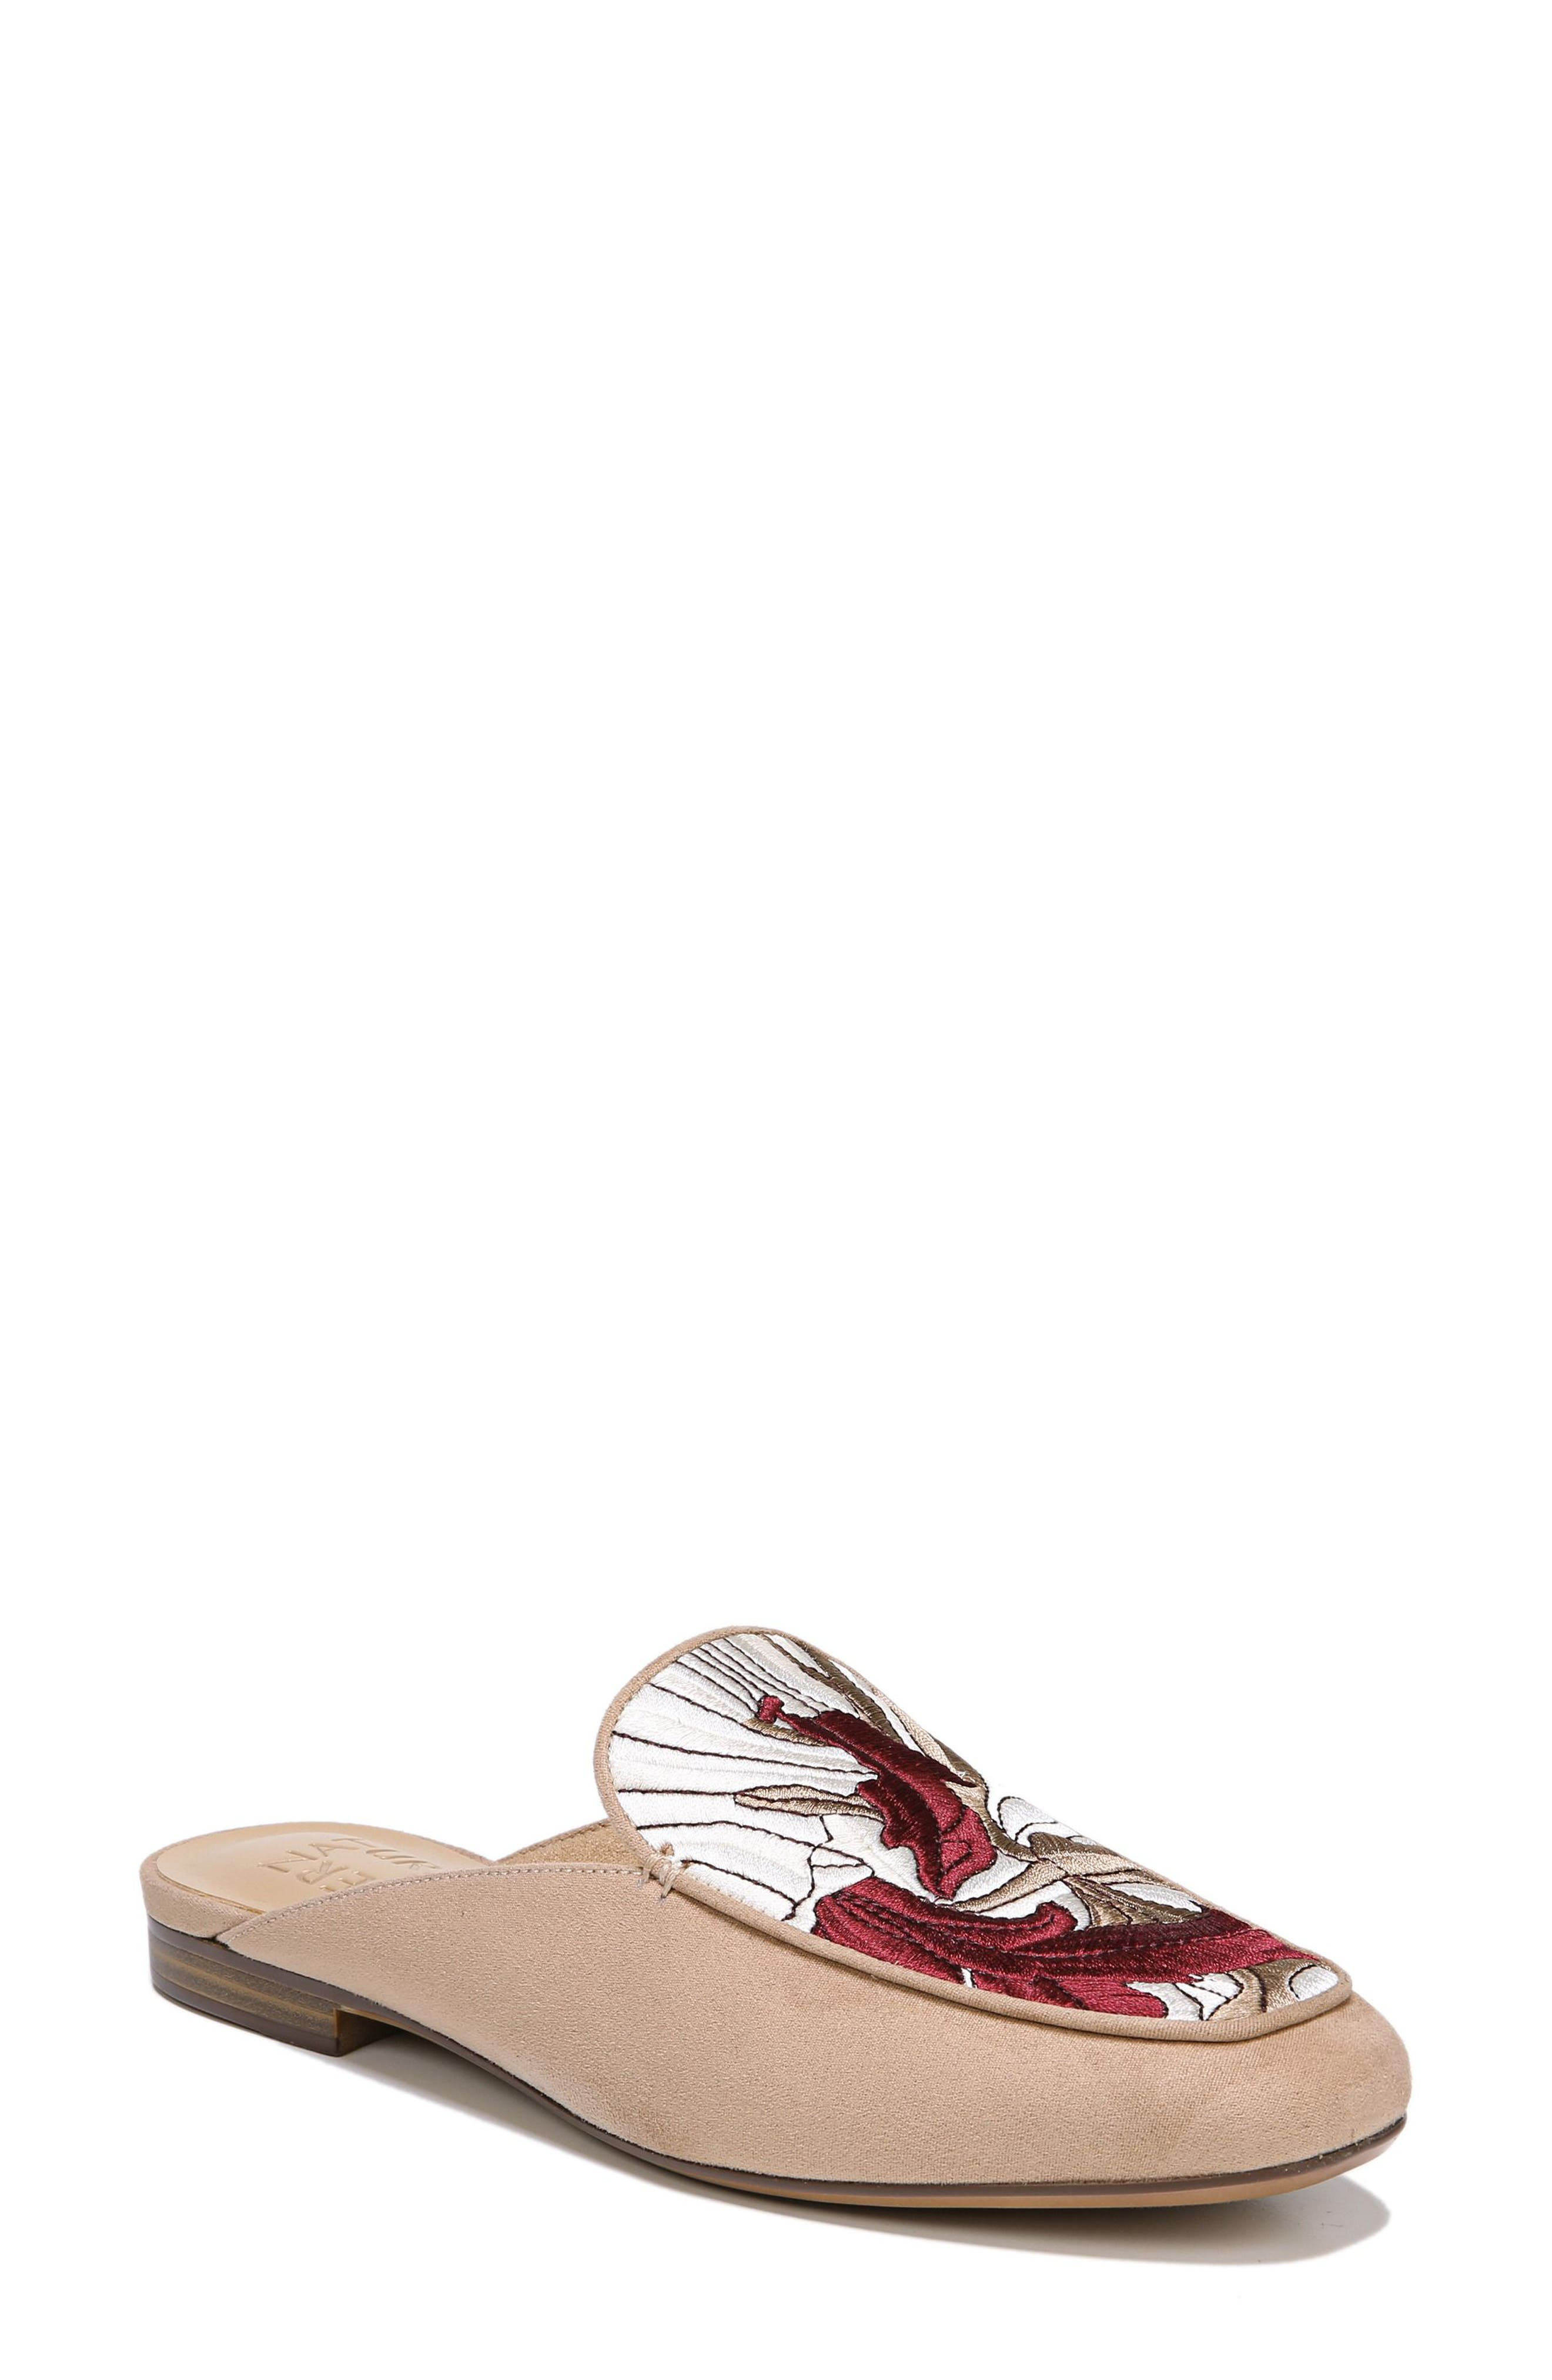 Eden II Embroidered Mule,                             Main thumbnail 1, color,                             Barley Fabric